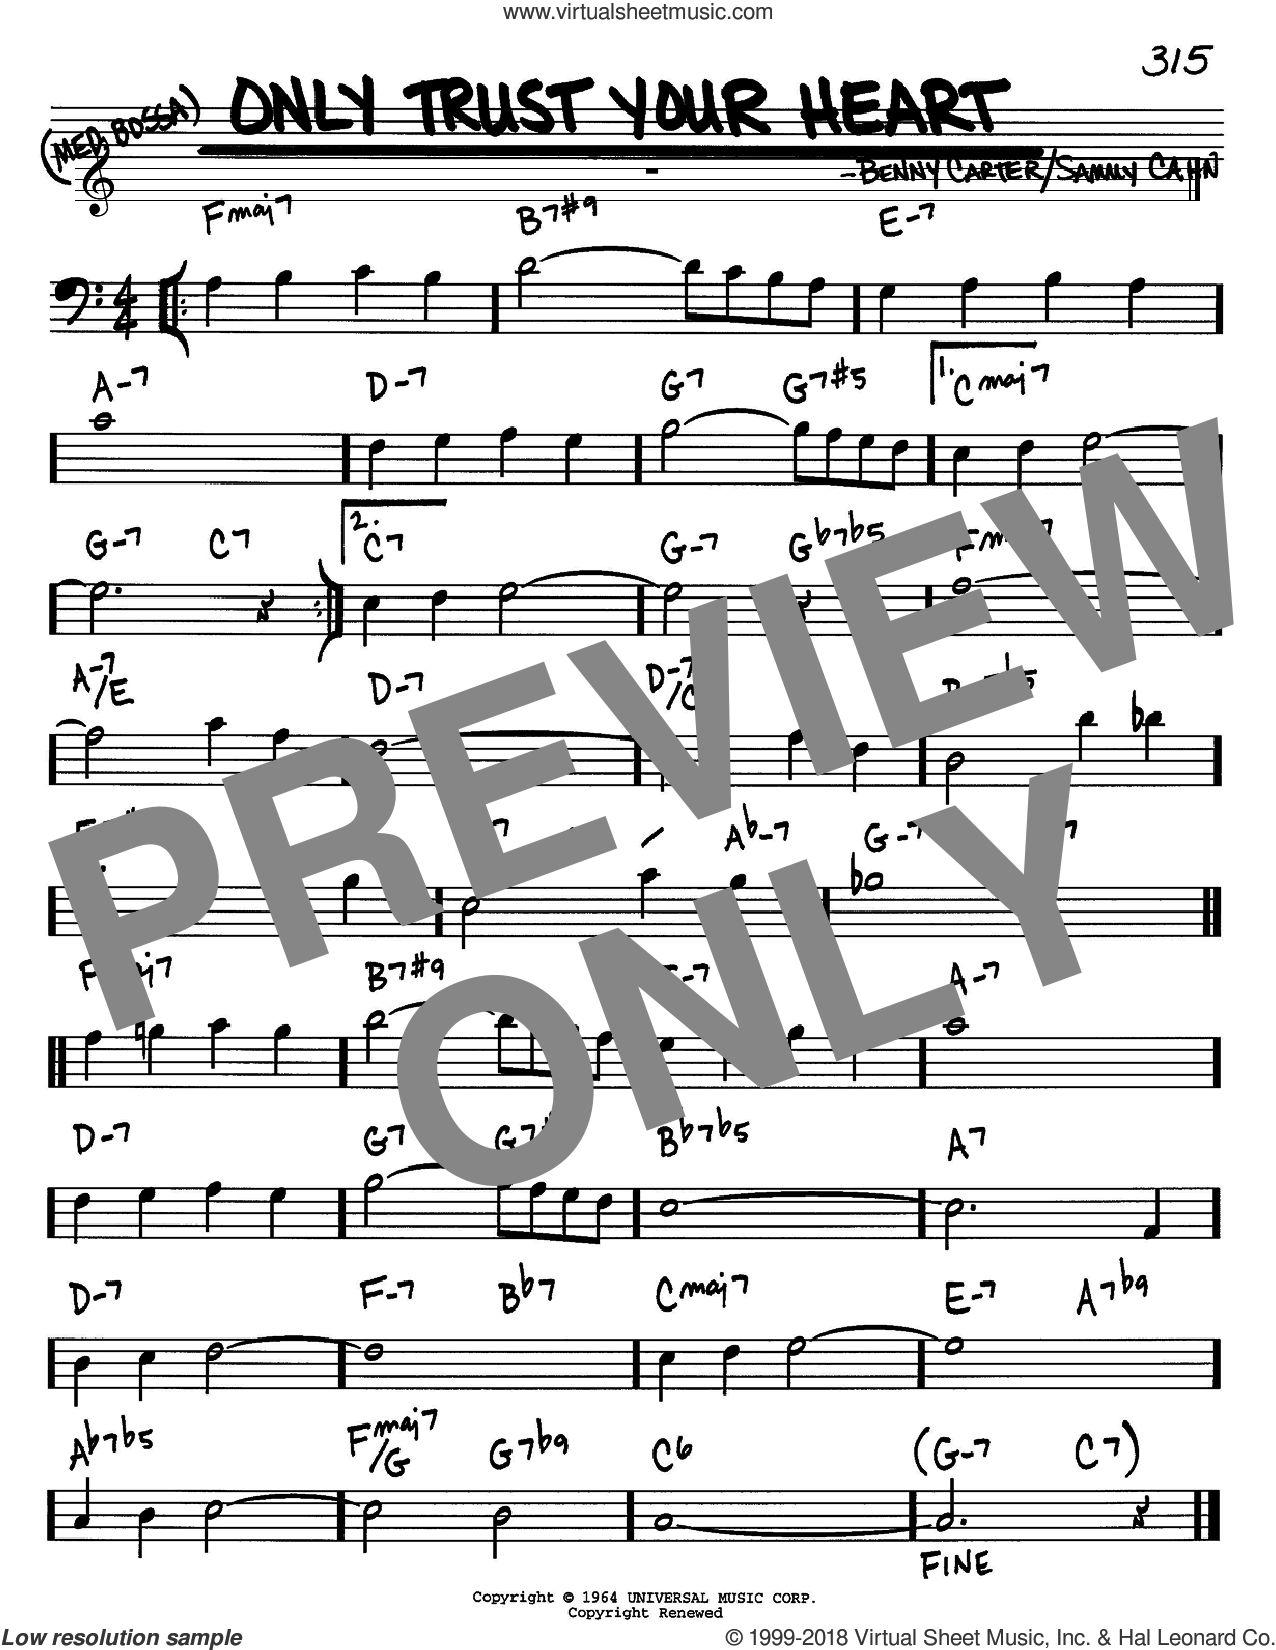 Only Trust Your Heart sheet music for voice and other instruments (Bass Clef ) by Benny Carter and Sammy Cahn